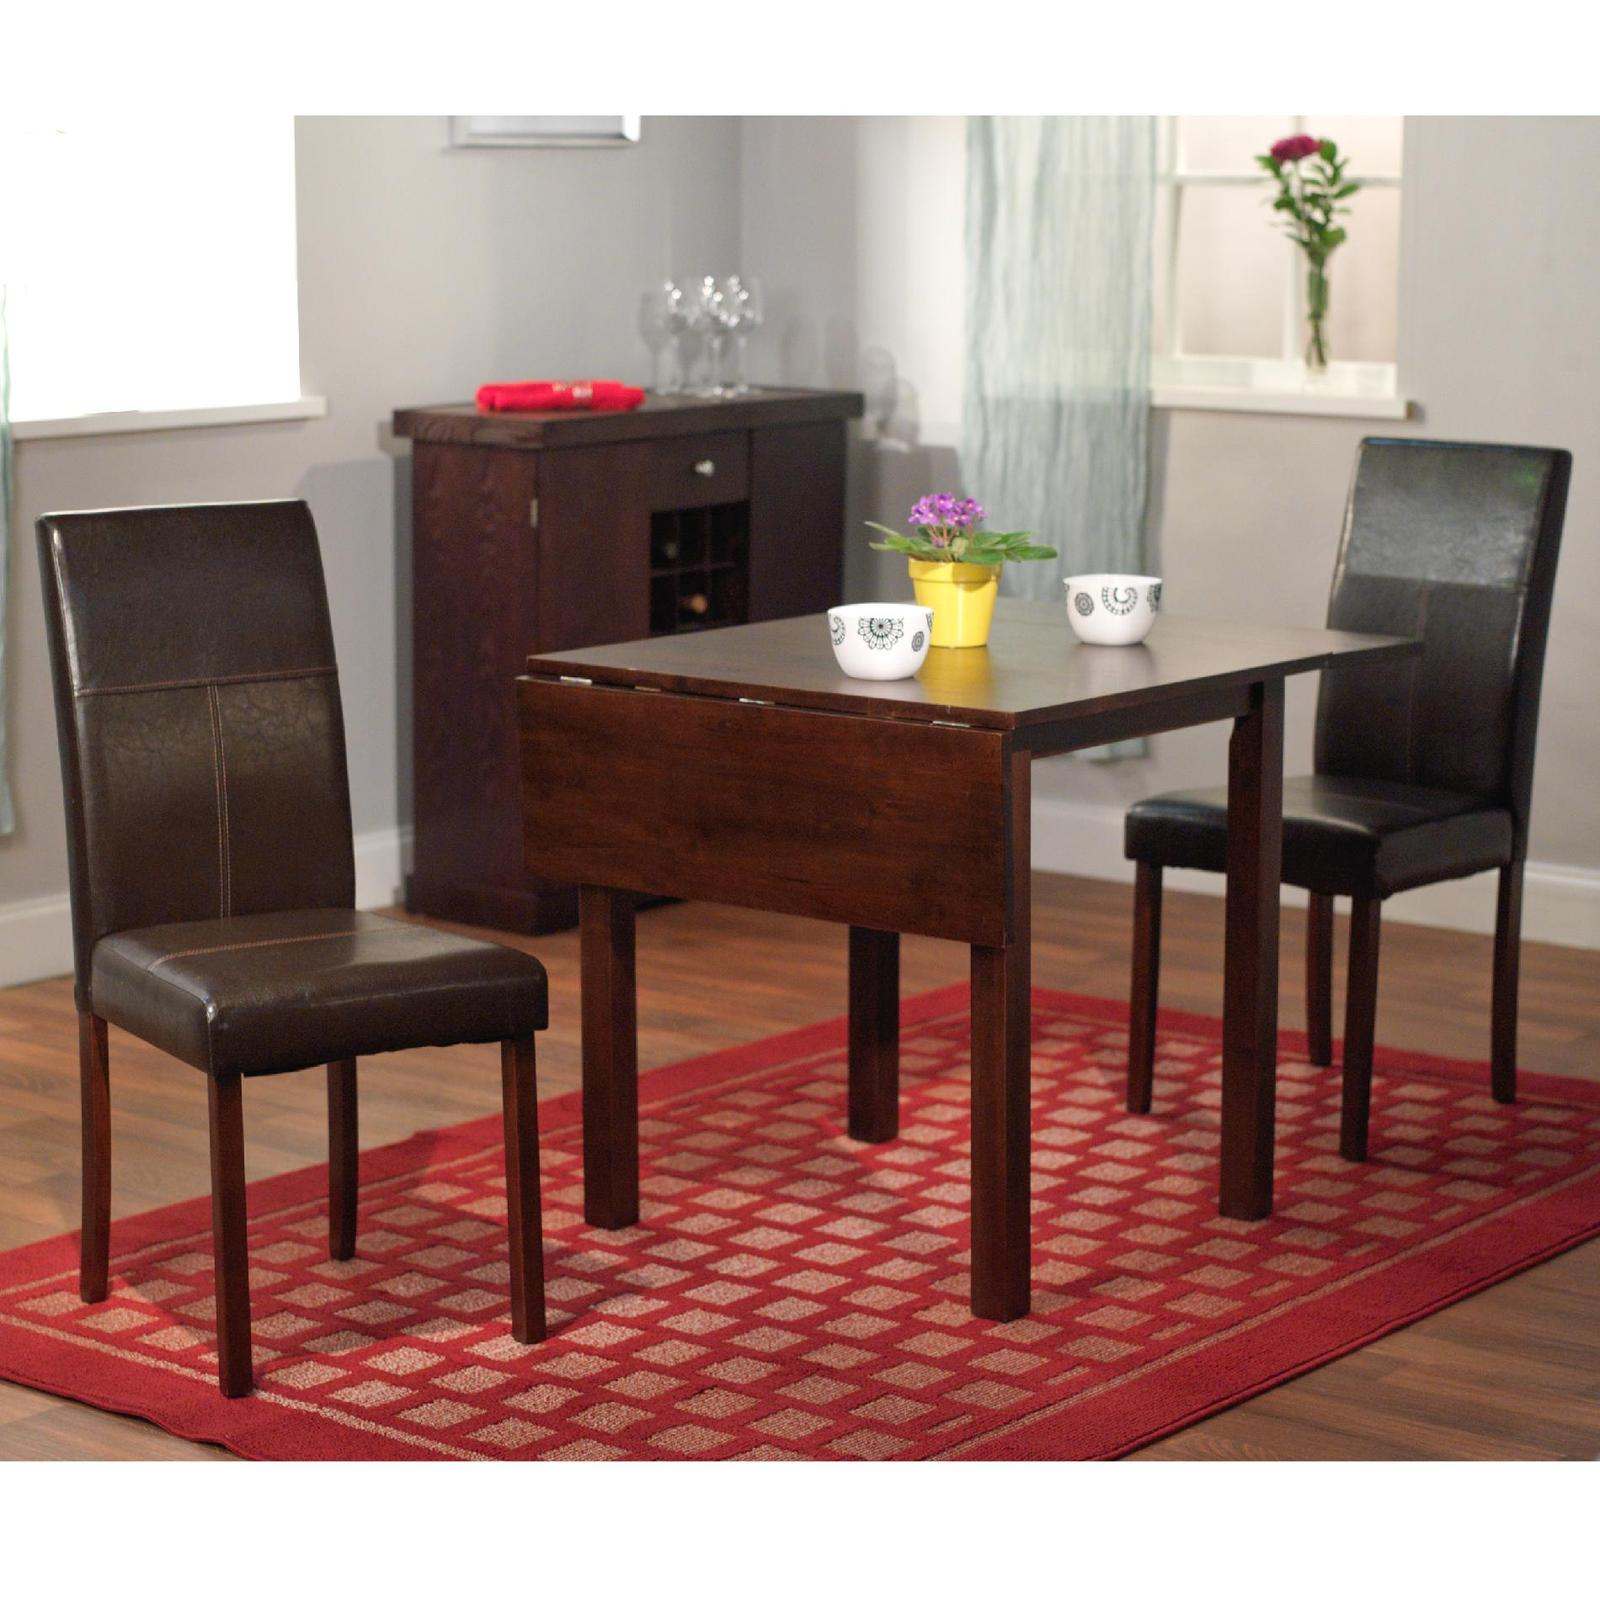 Dining Room Set Wooden Furniture 3 Piece Drop Leaf Table Leather Chairs Compact Dining Sets